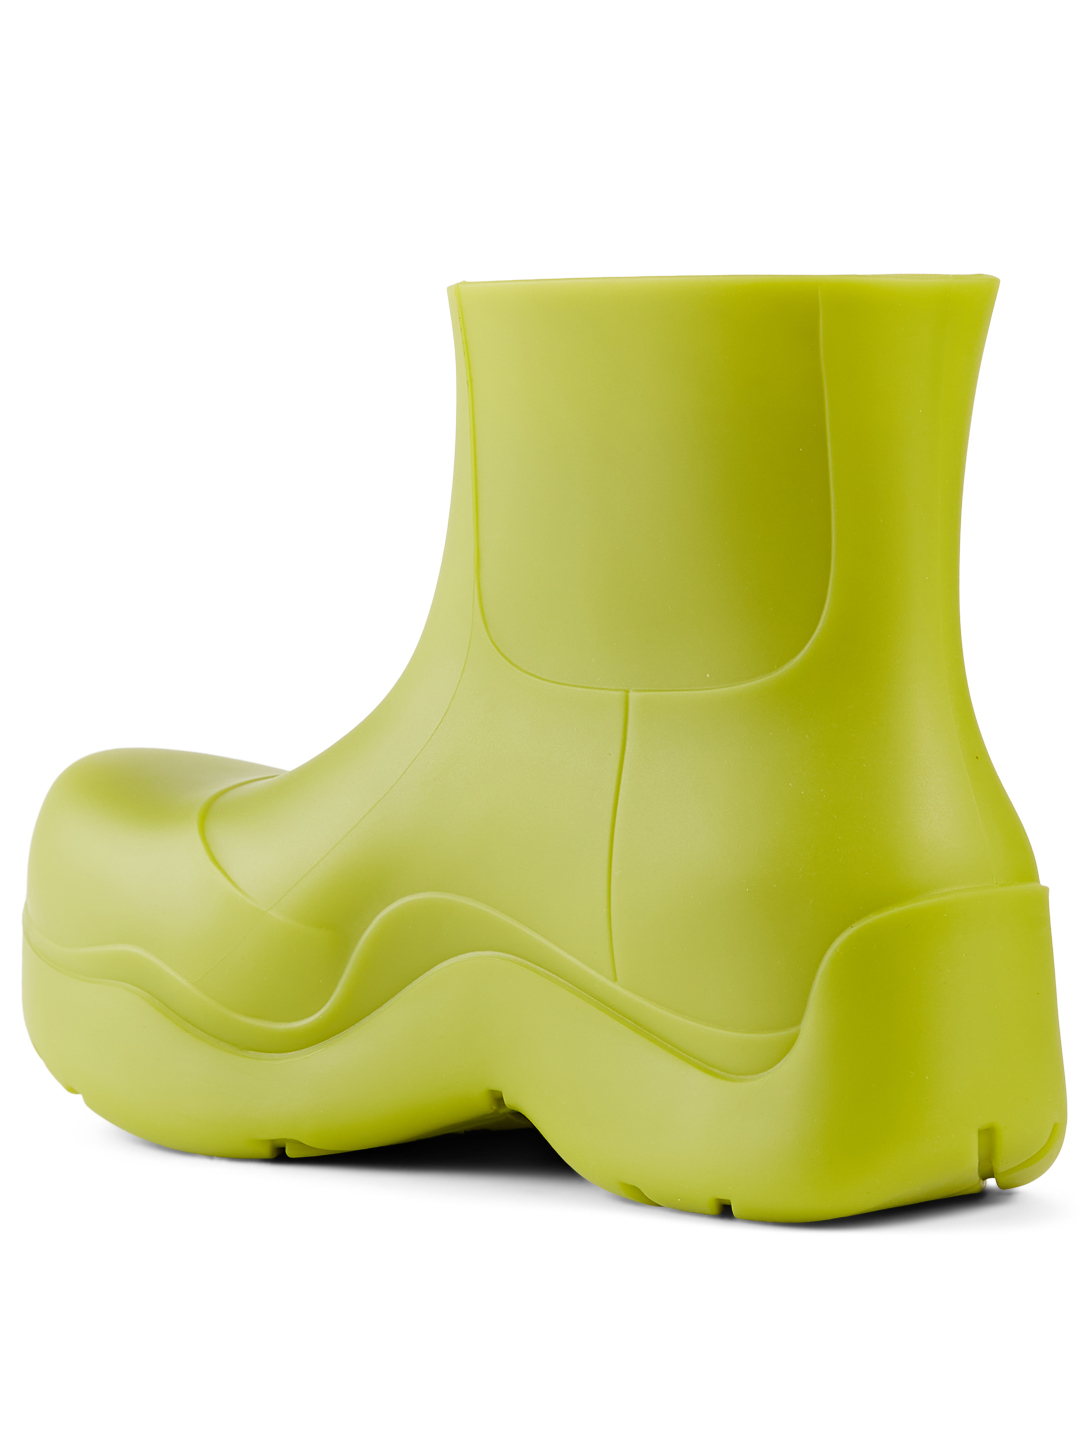 BOTTEGA VENETA The Puddle Rubber Ankle Boots Women's Green